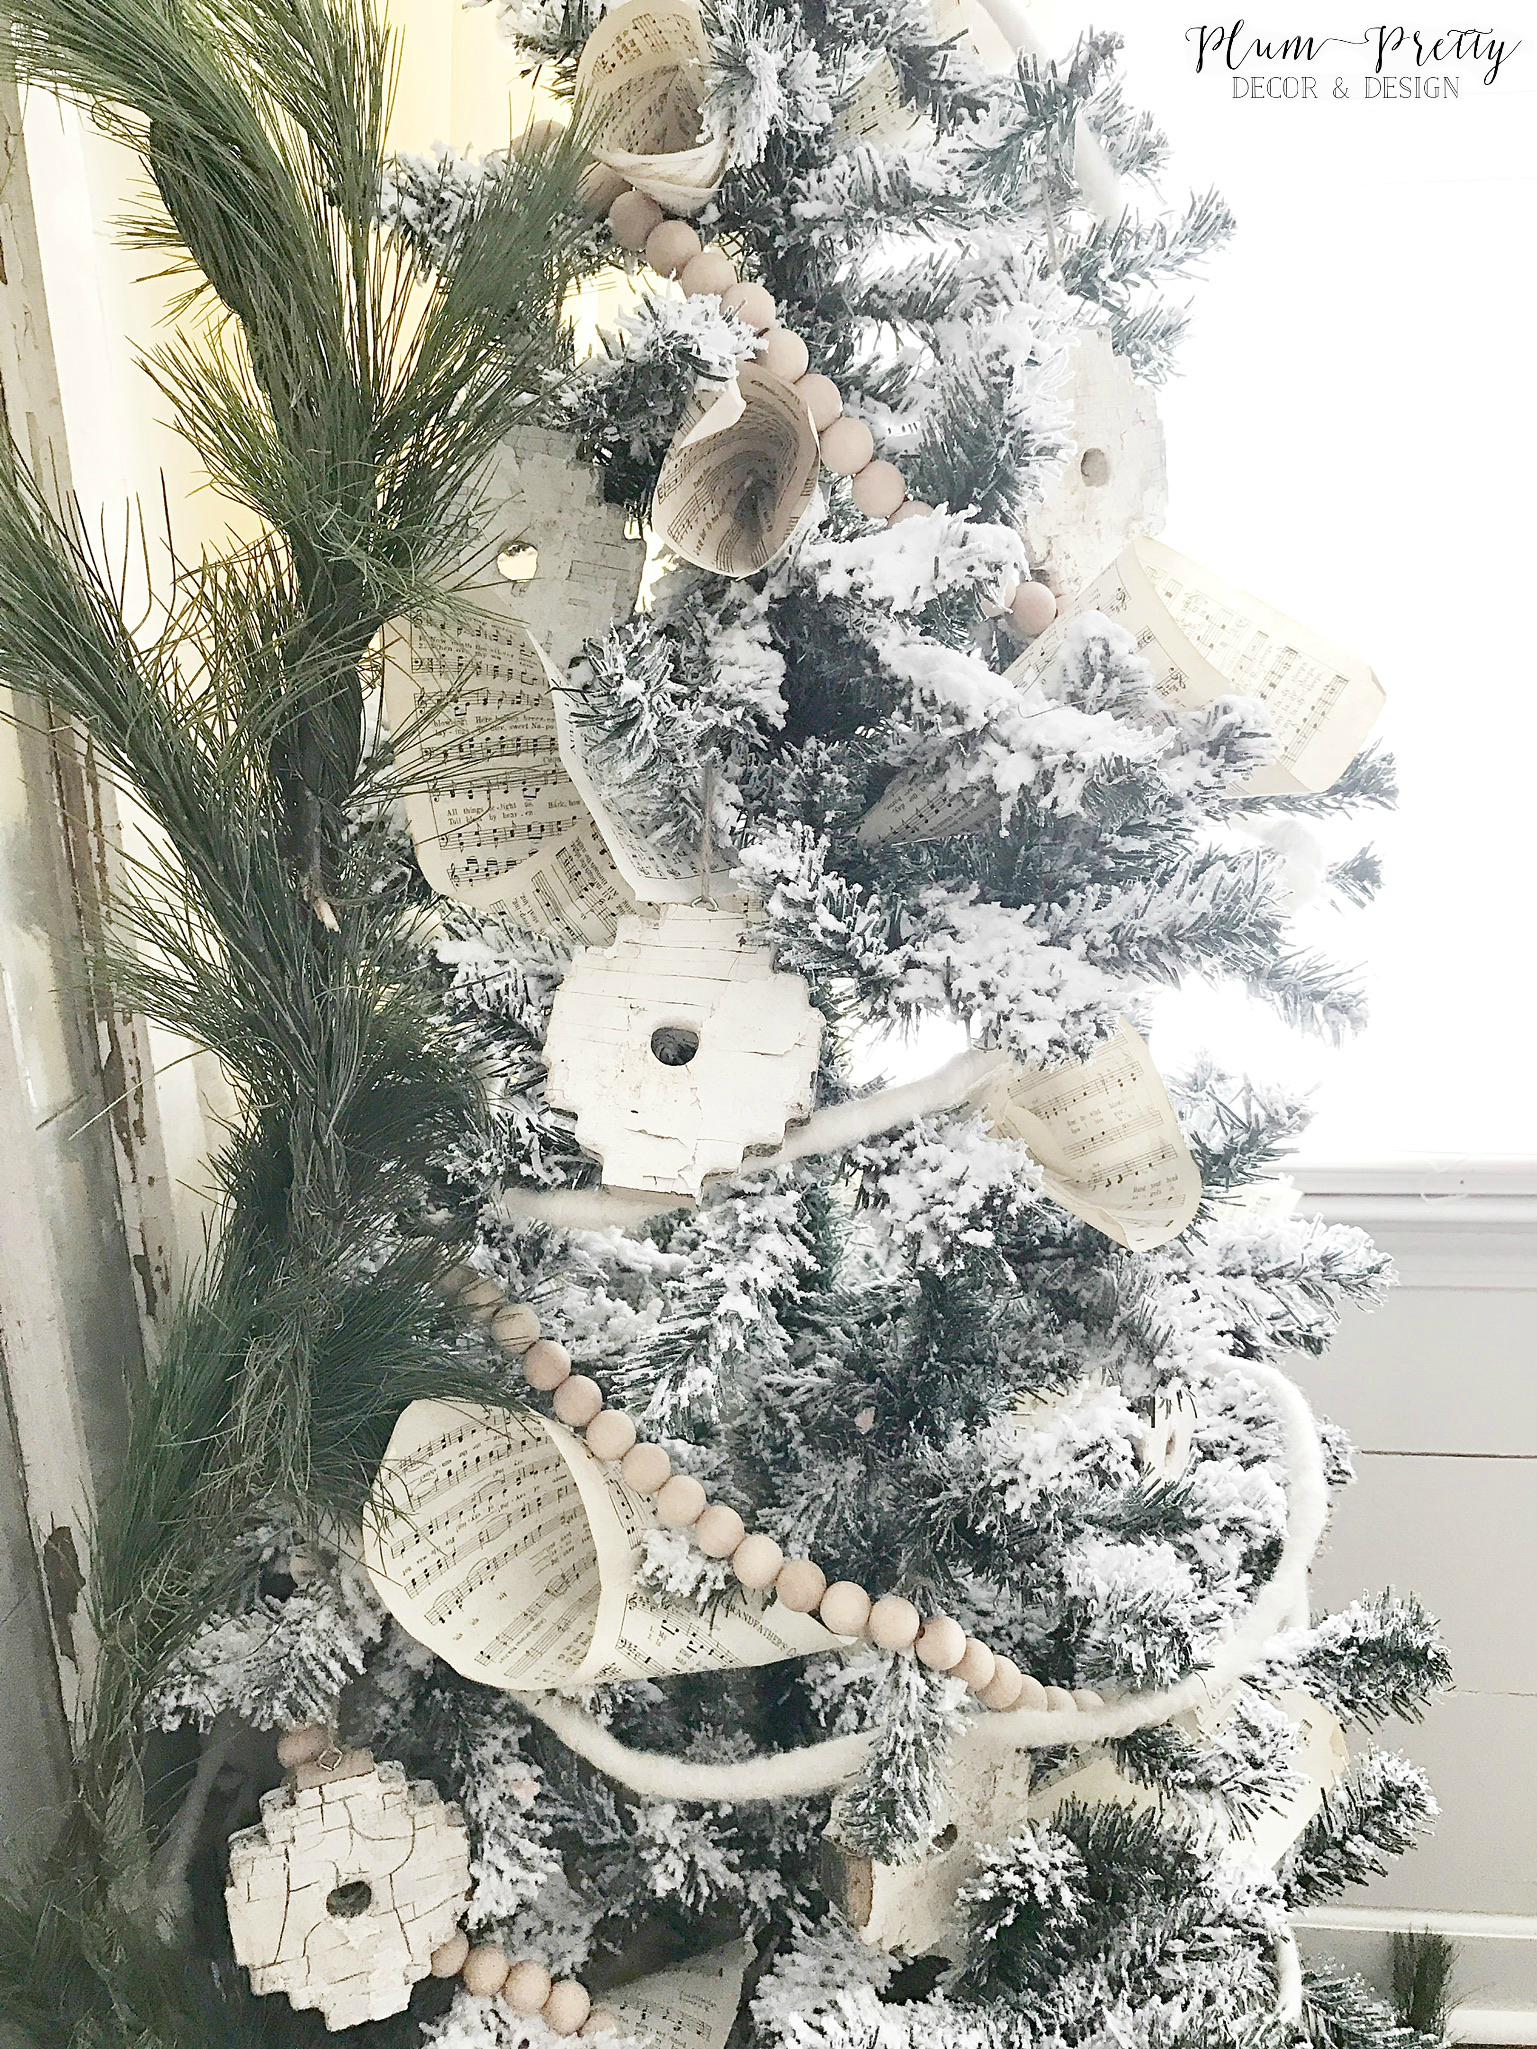 Flocked Christmas Tree with Chippy Architectural Ornaments and Music Sheets- Plum Pretty Decor and Design